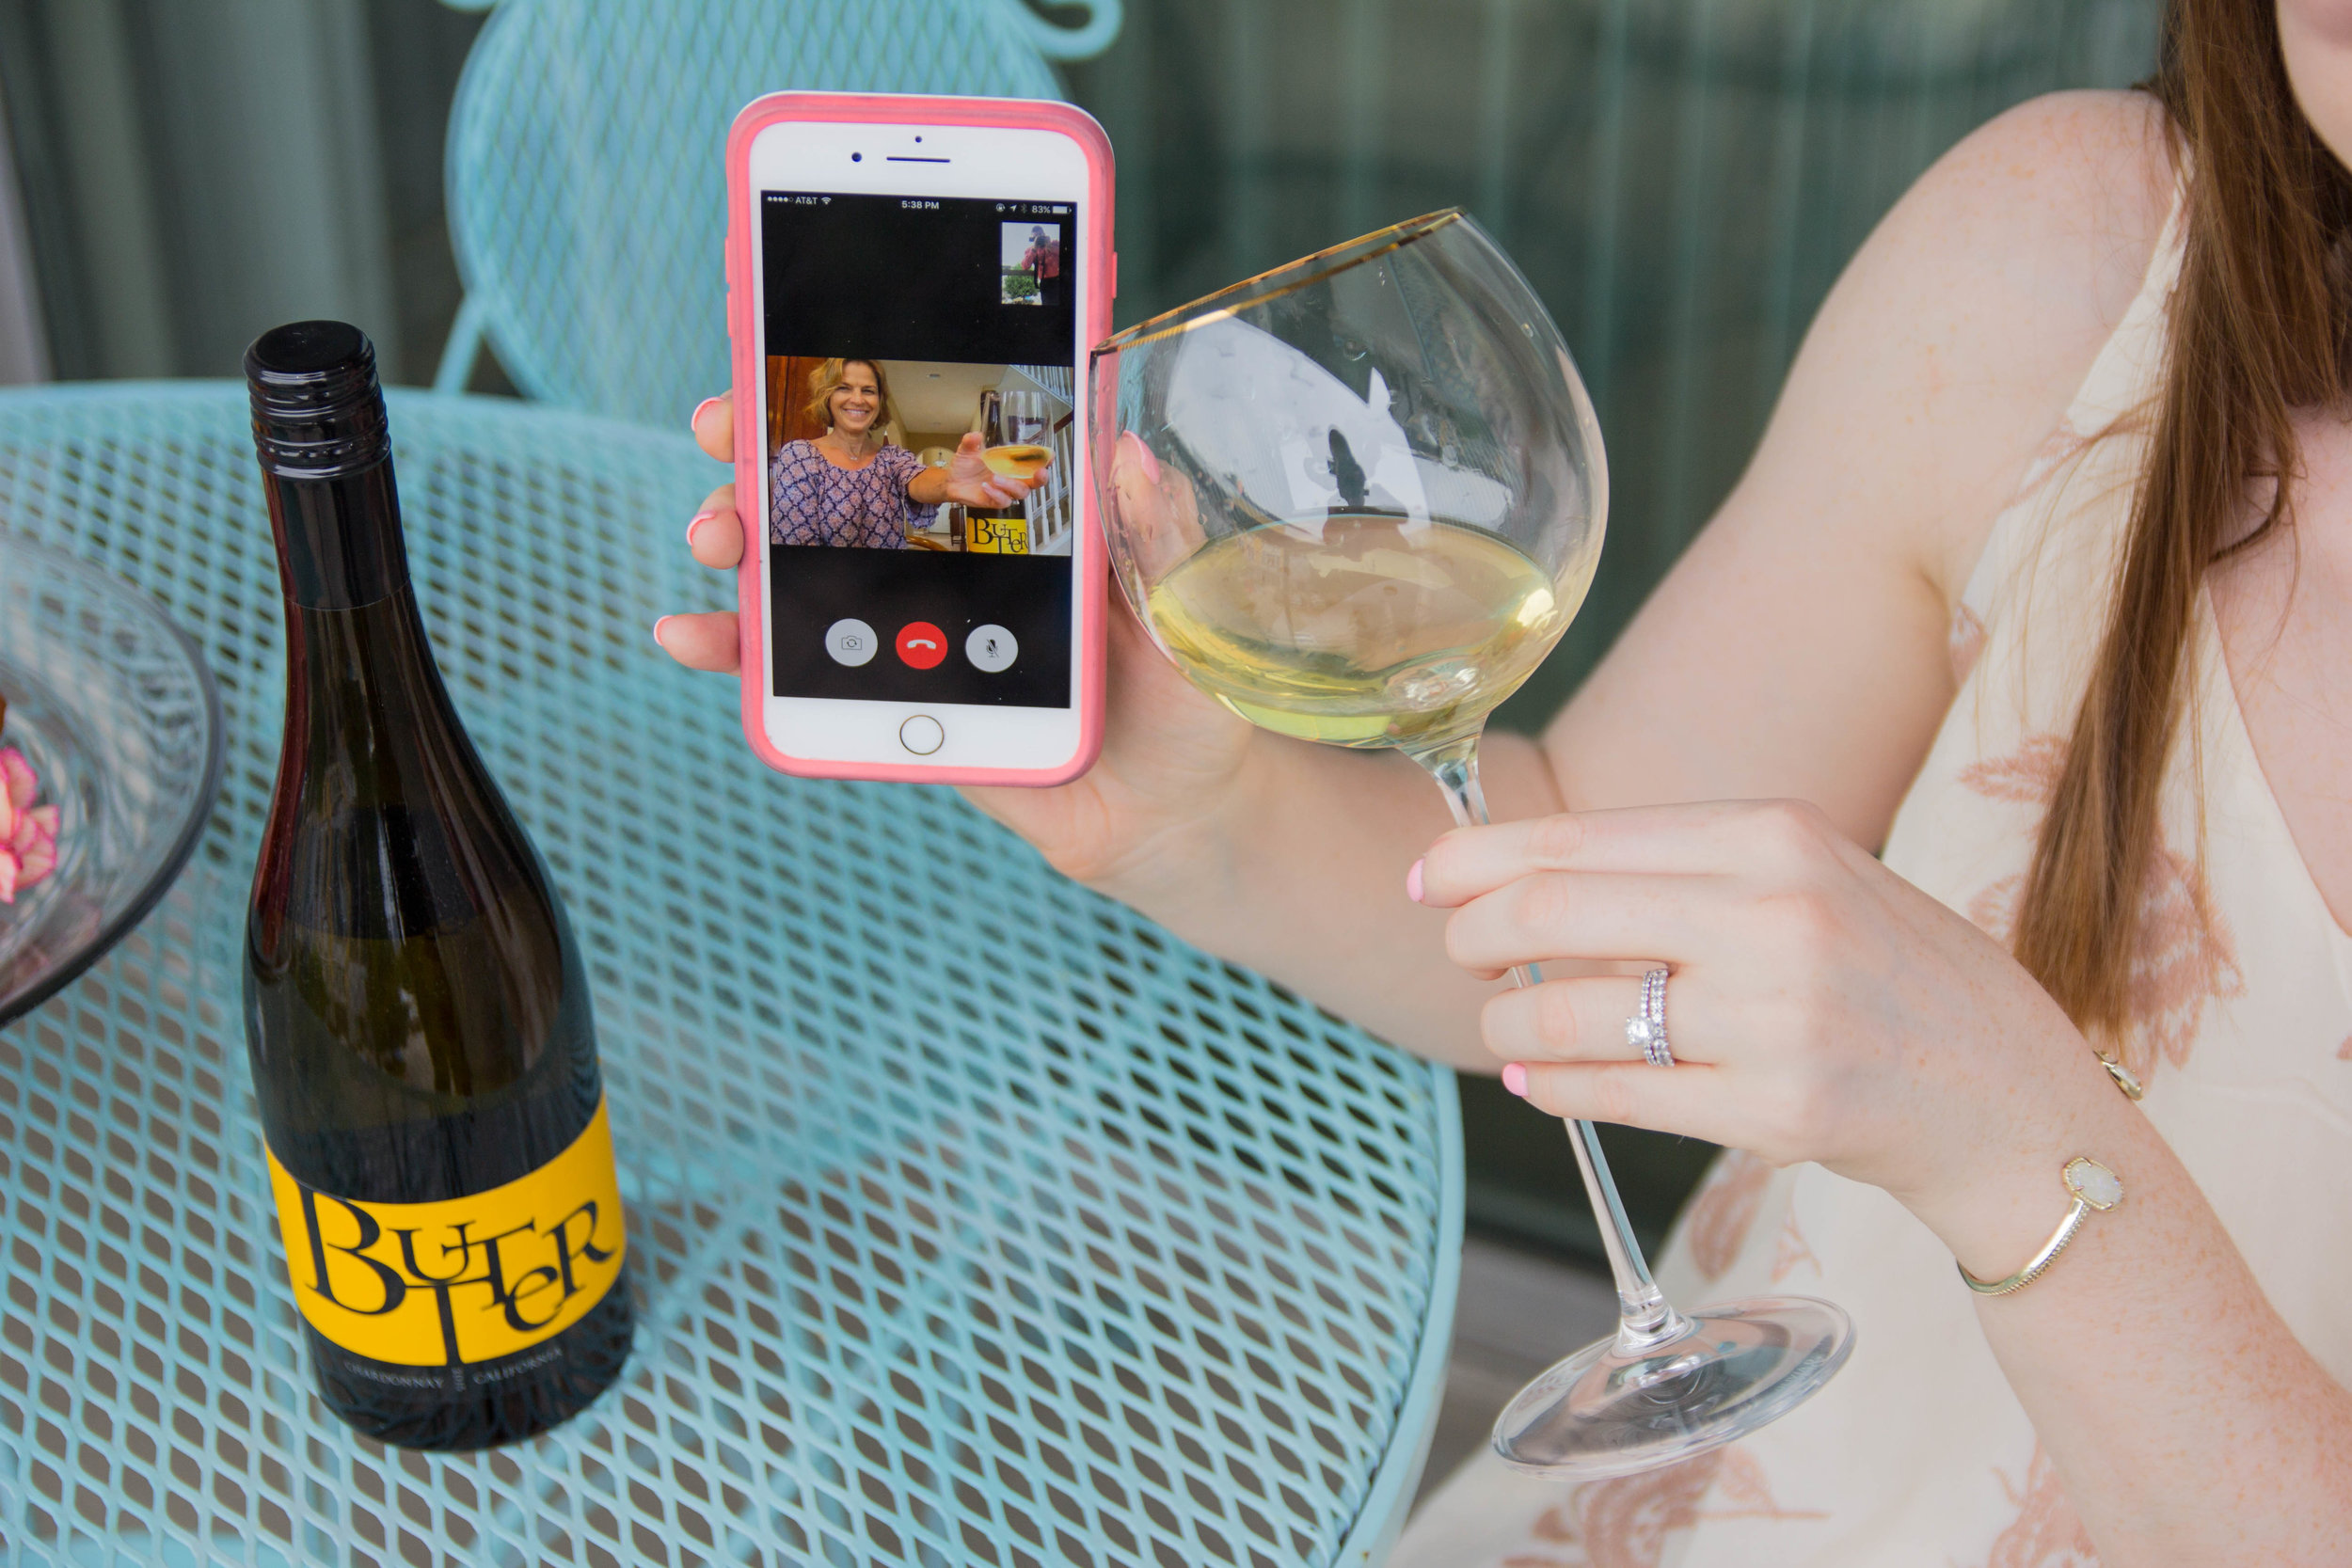 JaM Cellars Butter Chardonnay, Napa Wine, mother's day, cheers to mother in laws, bed bath and beyond tall wine glasses, lemon pound cake, the perfect mother in law gift, otterbox, kendra scott elton bracelet